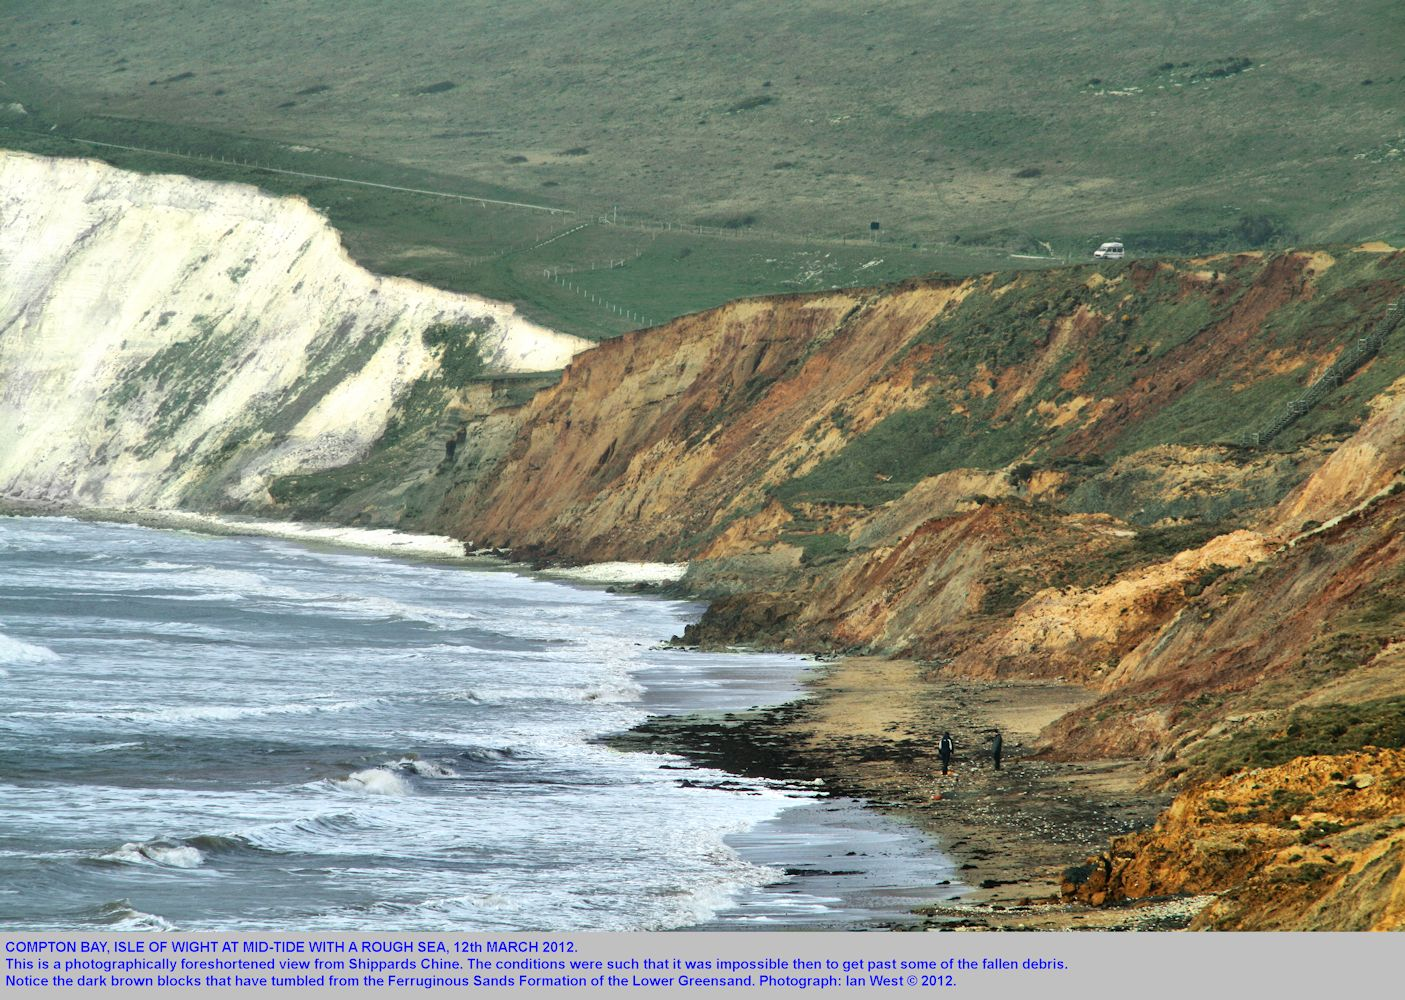 Compton Bay, Isle of Wight, with a rough sea, March 12th 2012